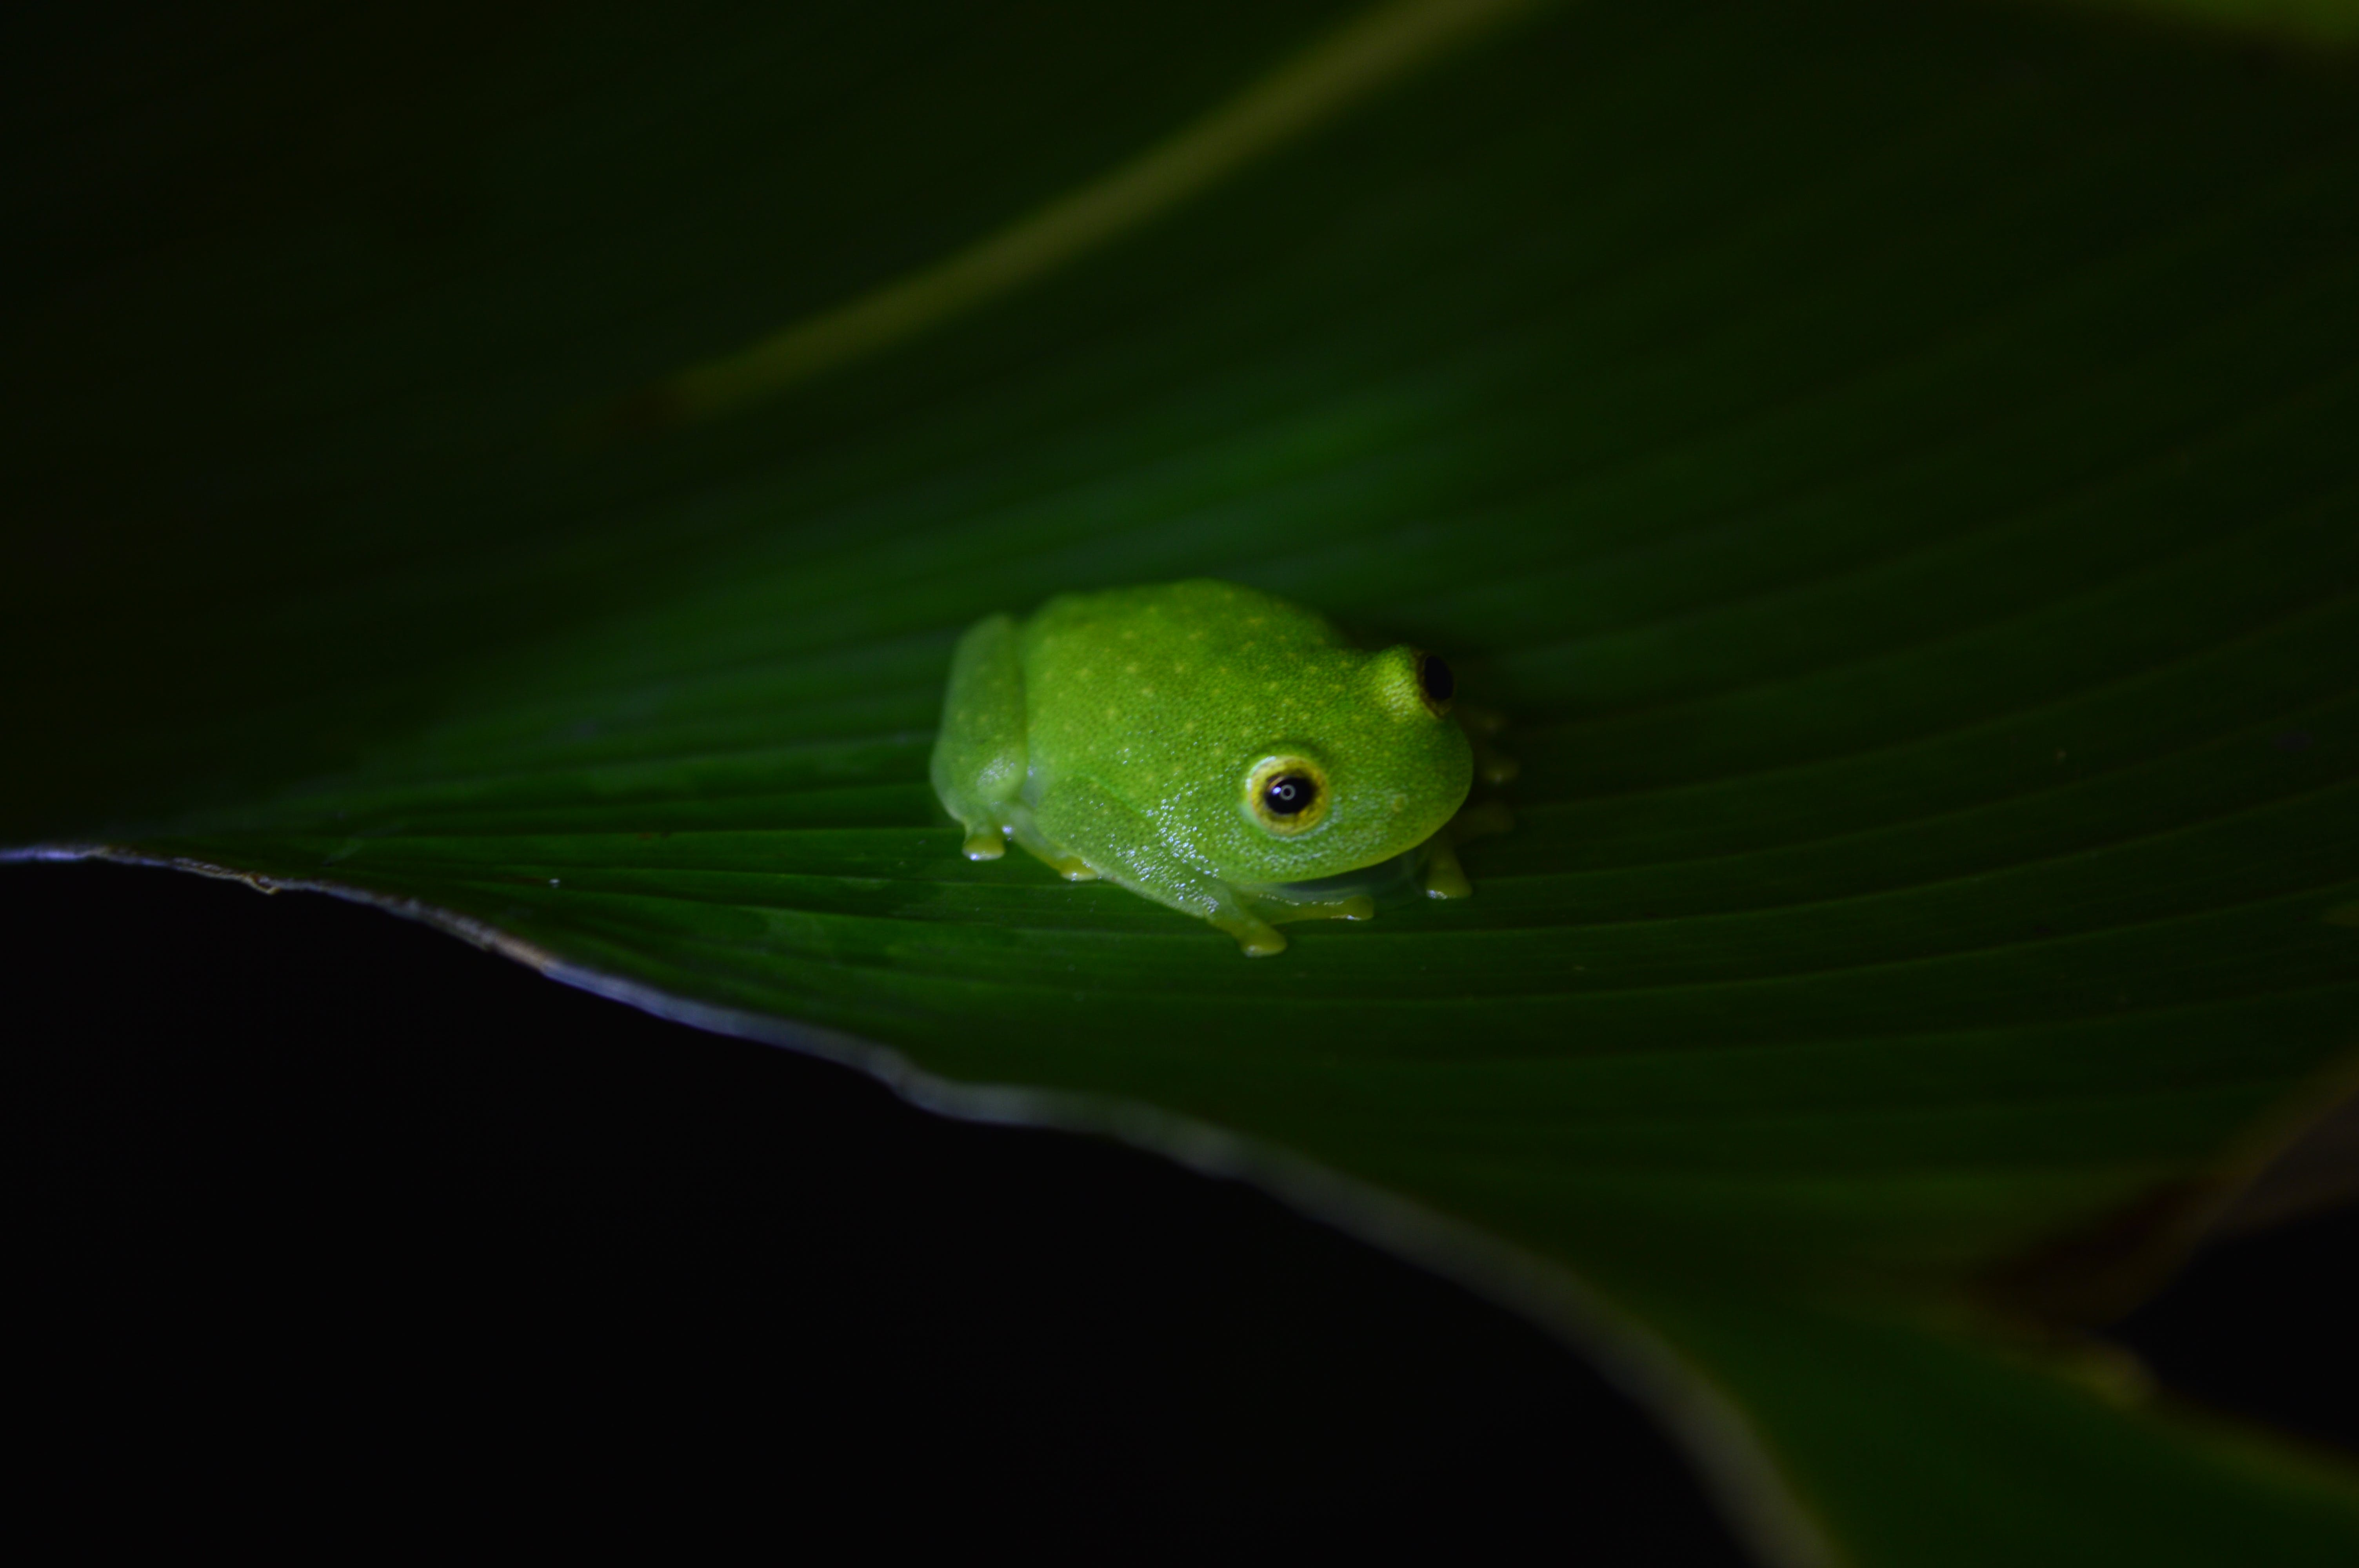 Photo of Green Frog on Leaf